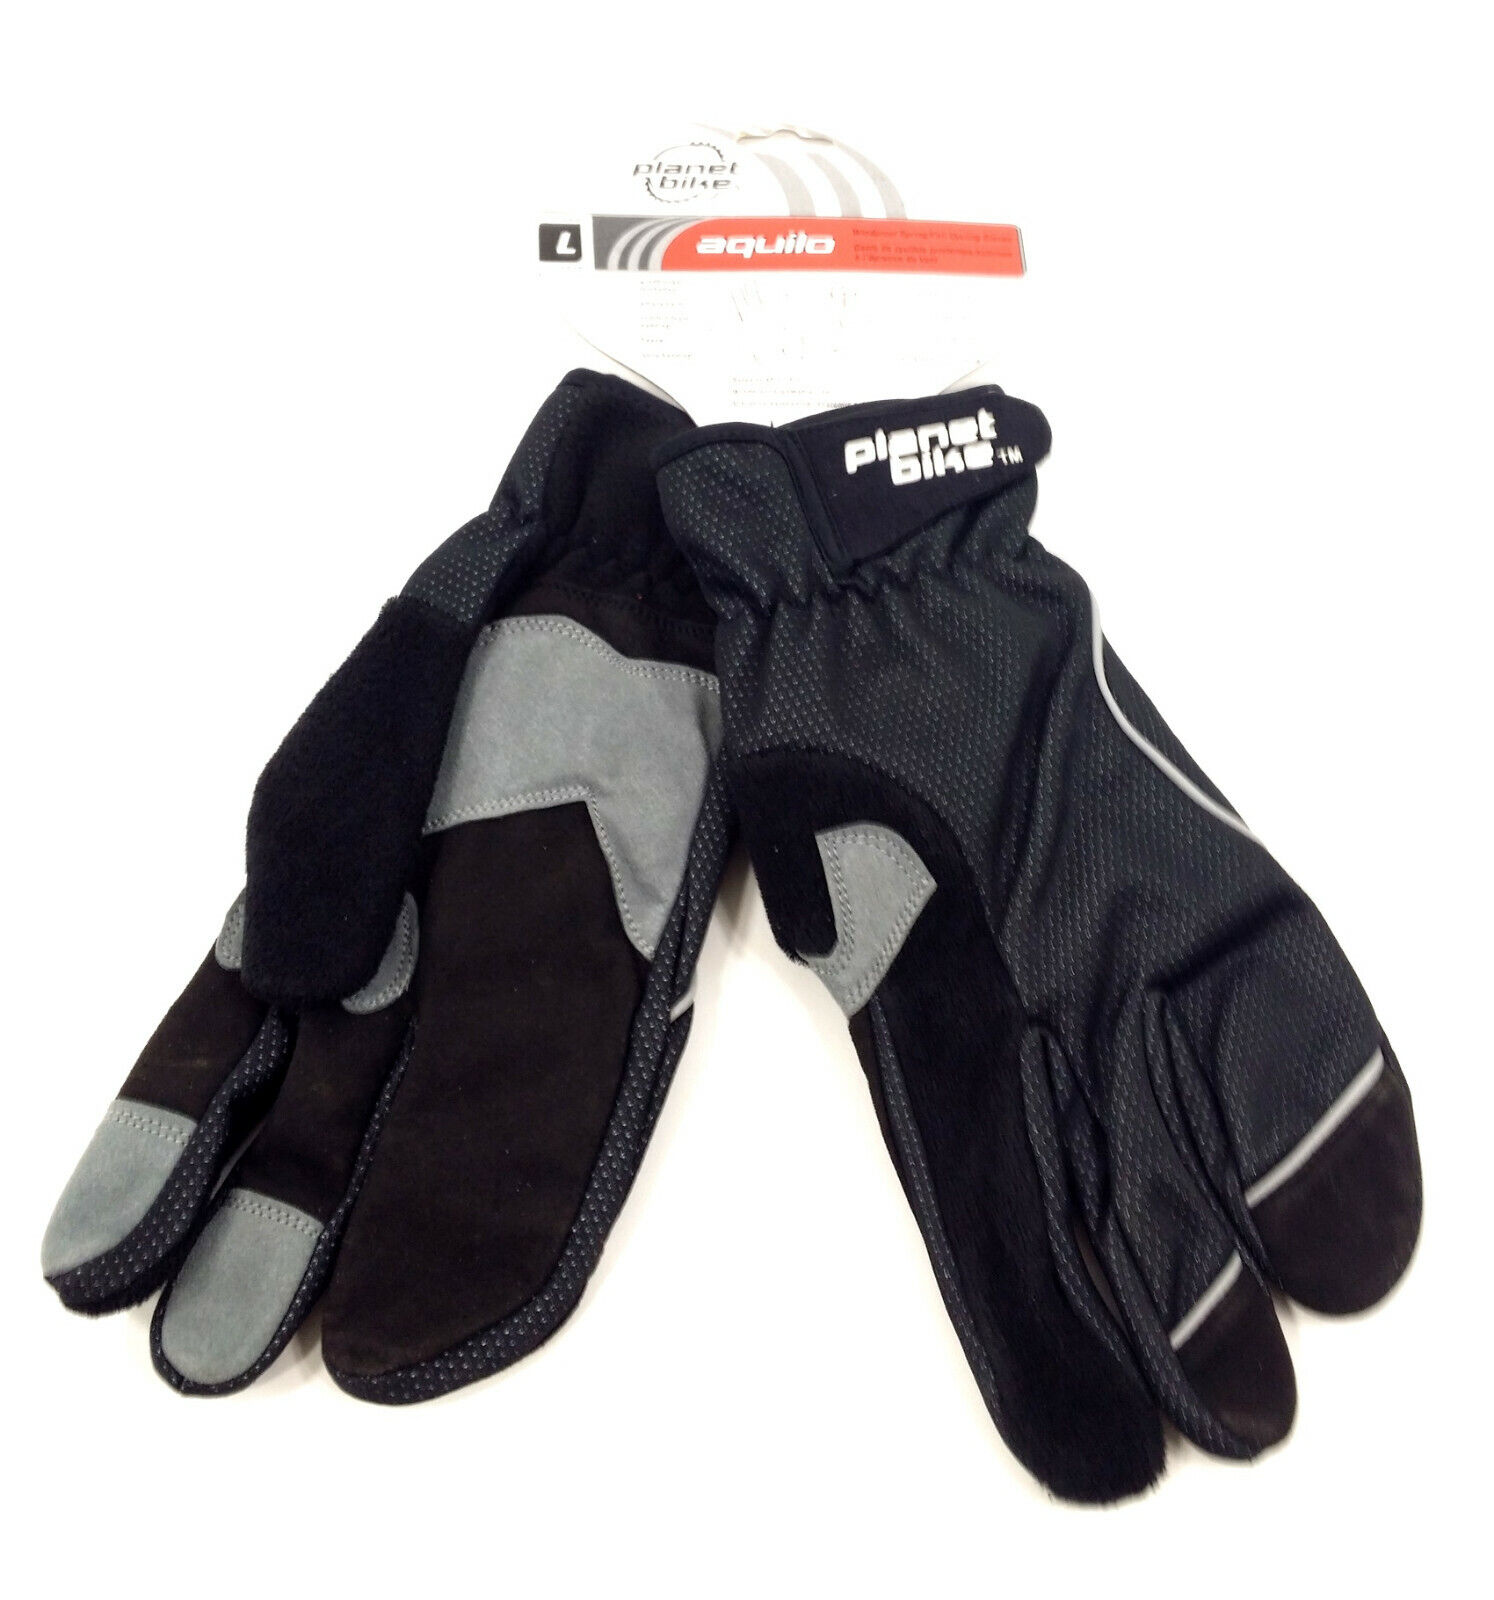 Planet Bike Gloves Aquilo Spring//Fall cycling glove Large unisex